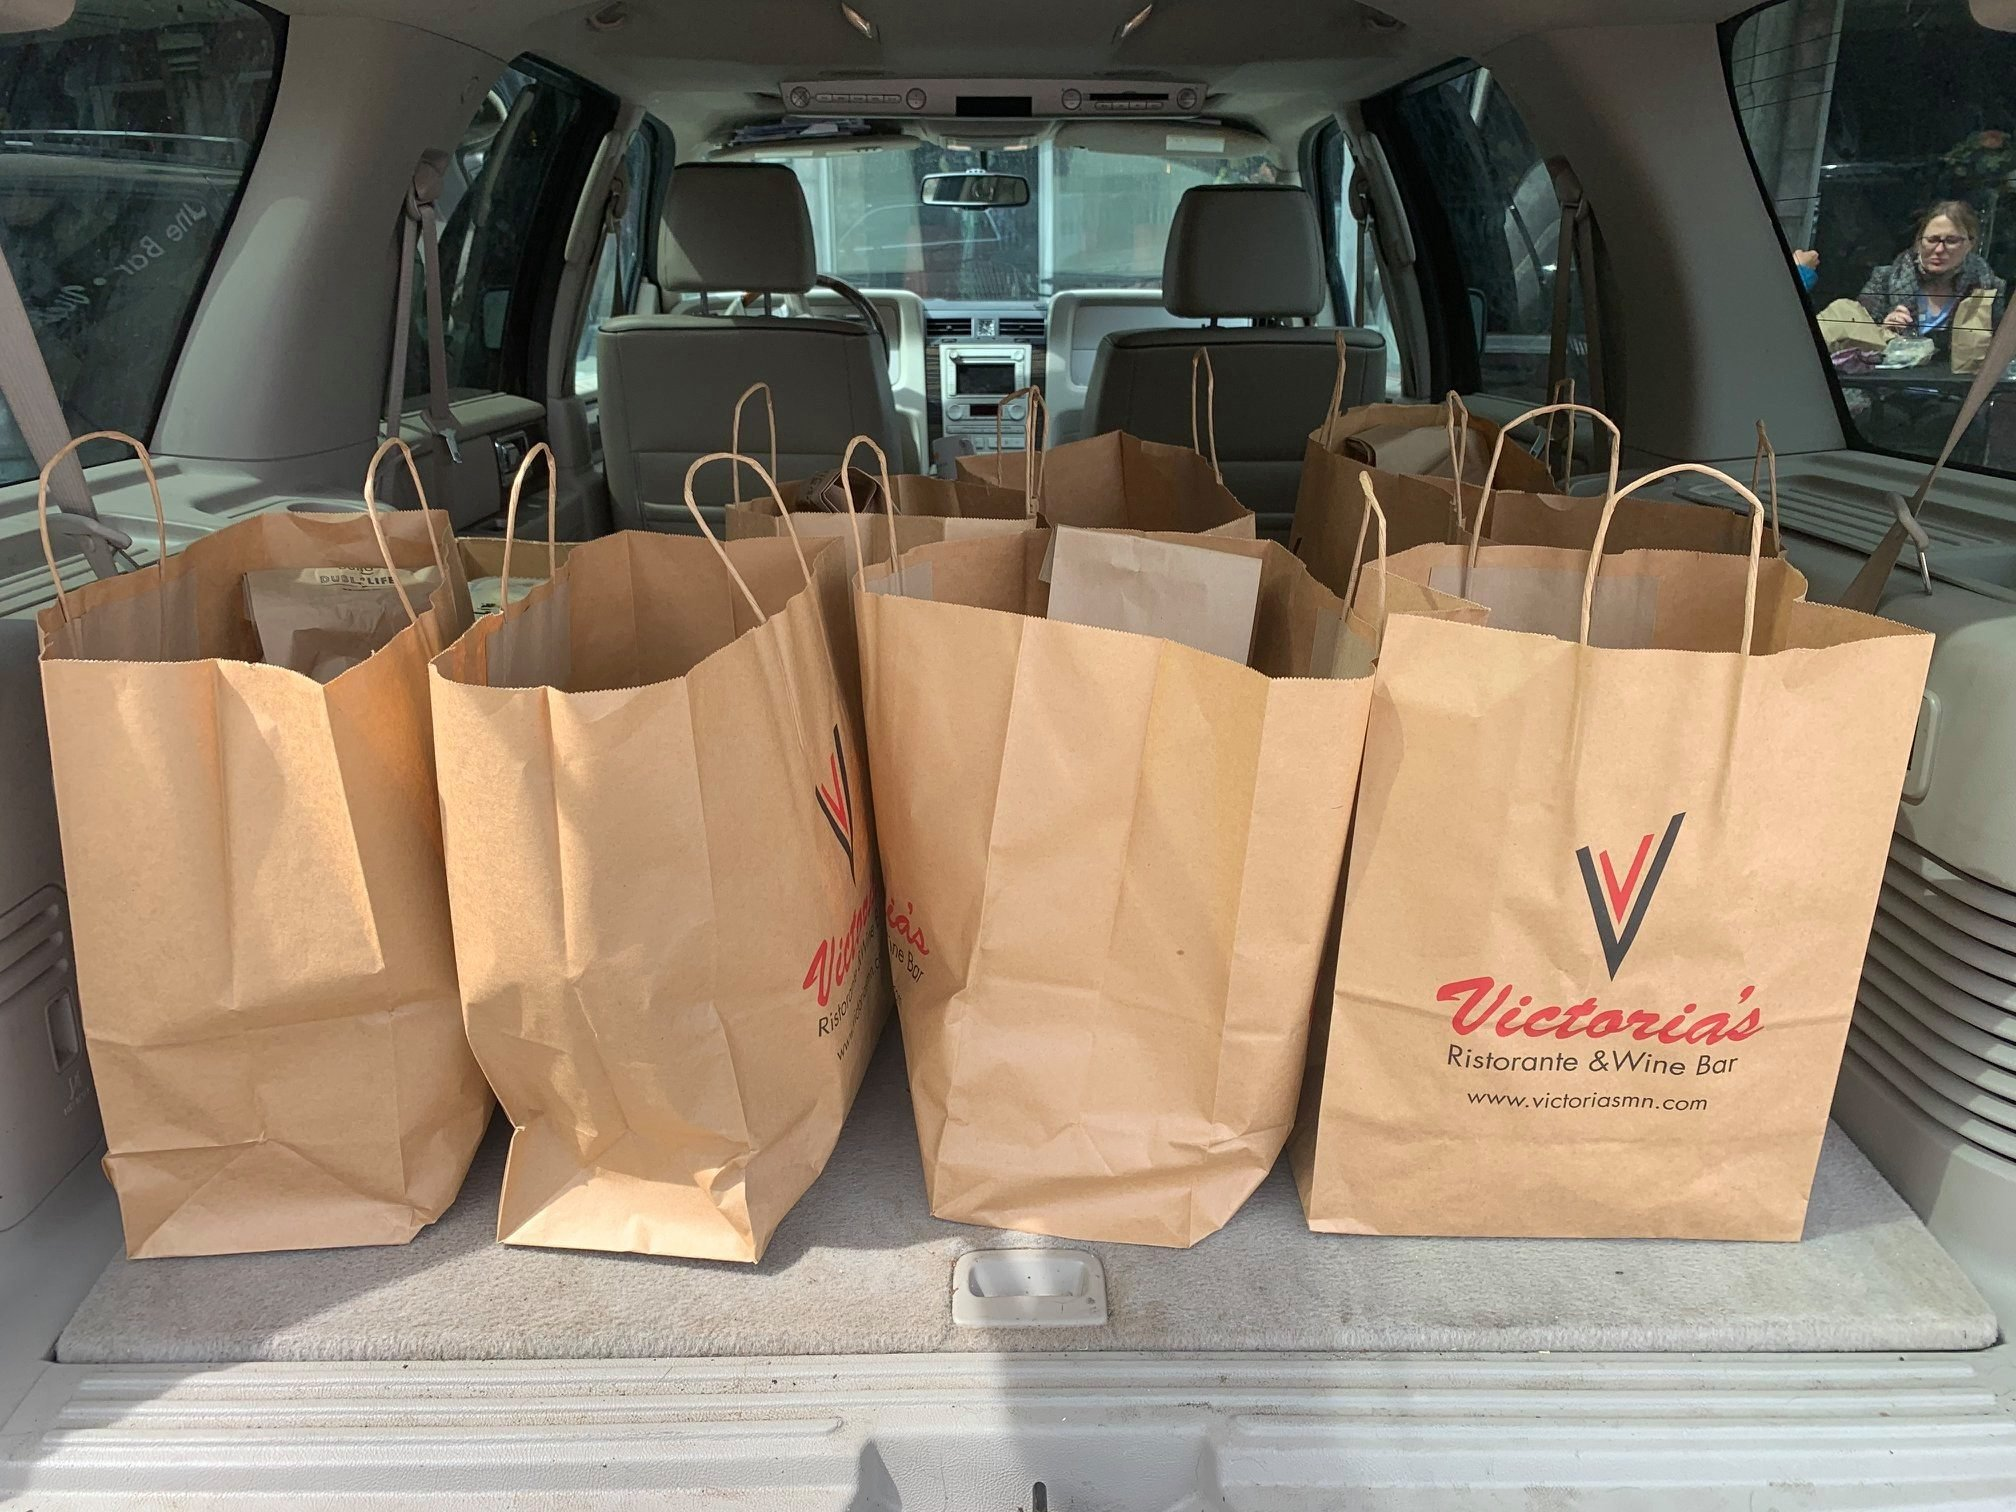 victoria's bags in the back of an suv